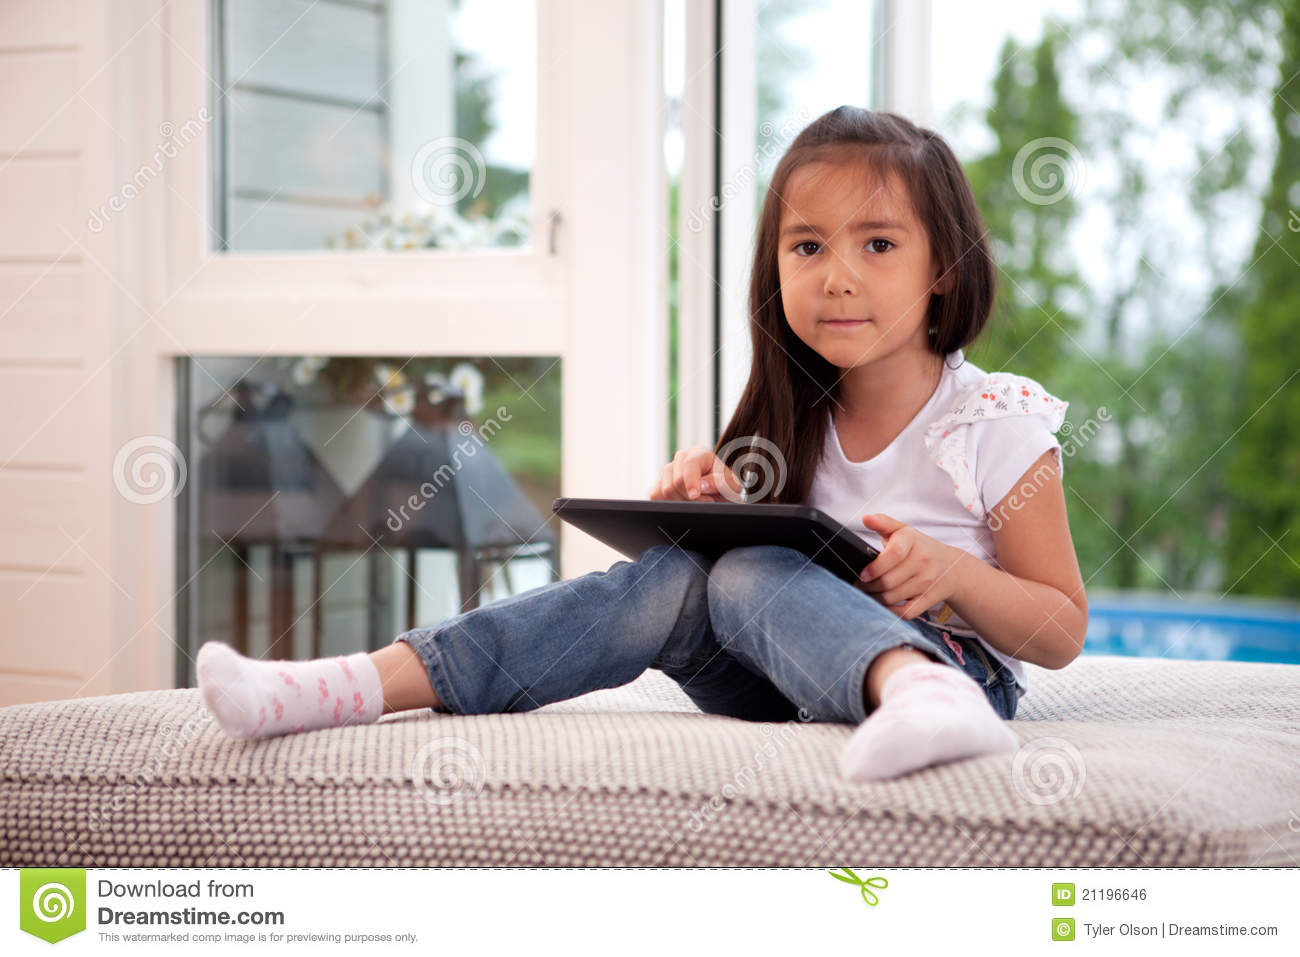 Portrait of Young Girl with Digital Tablet